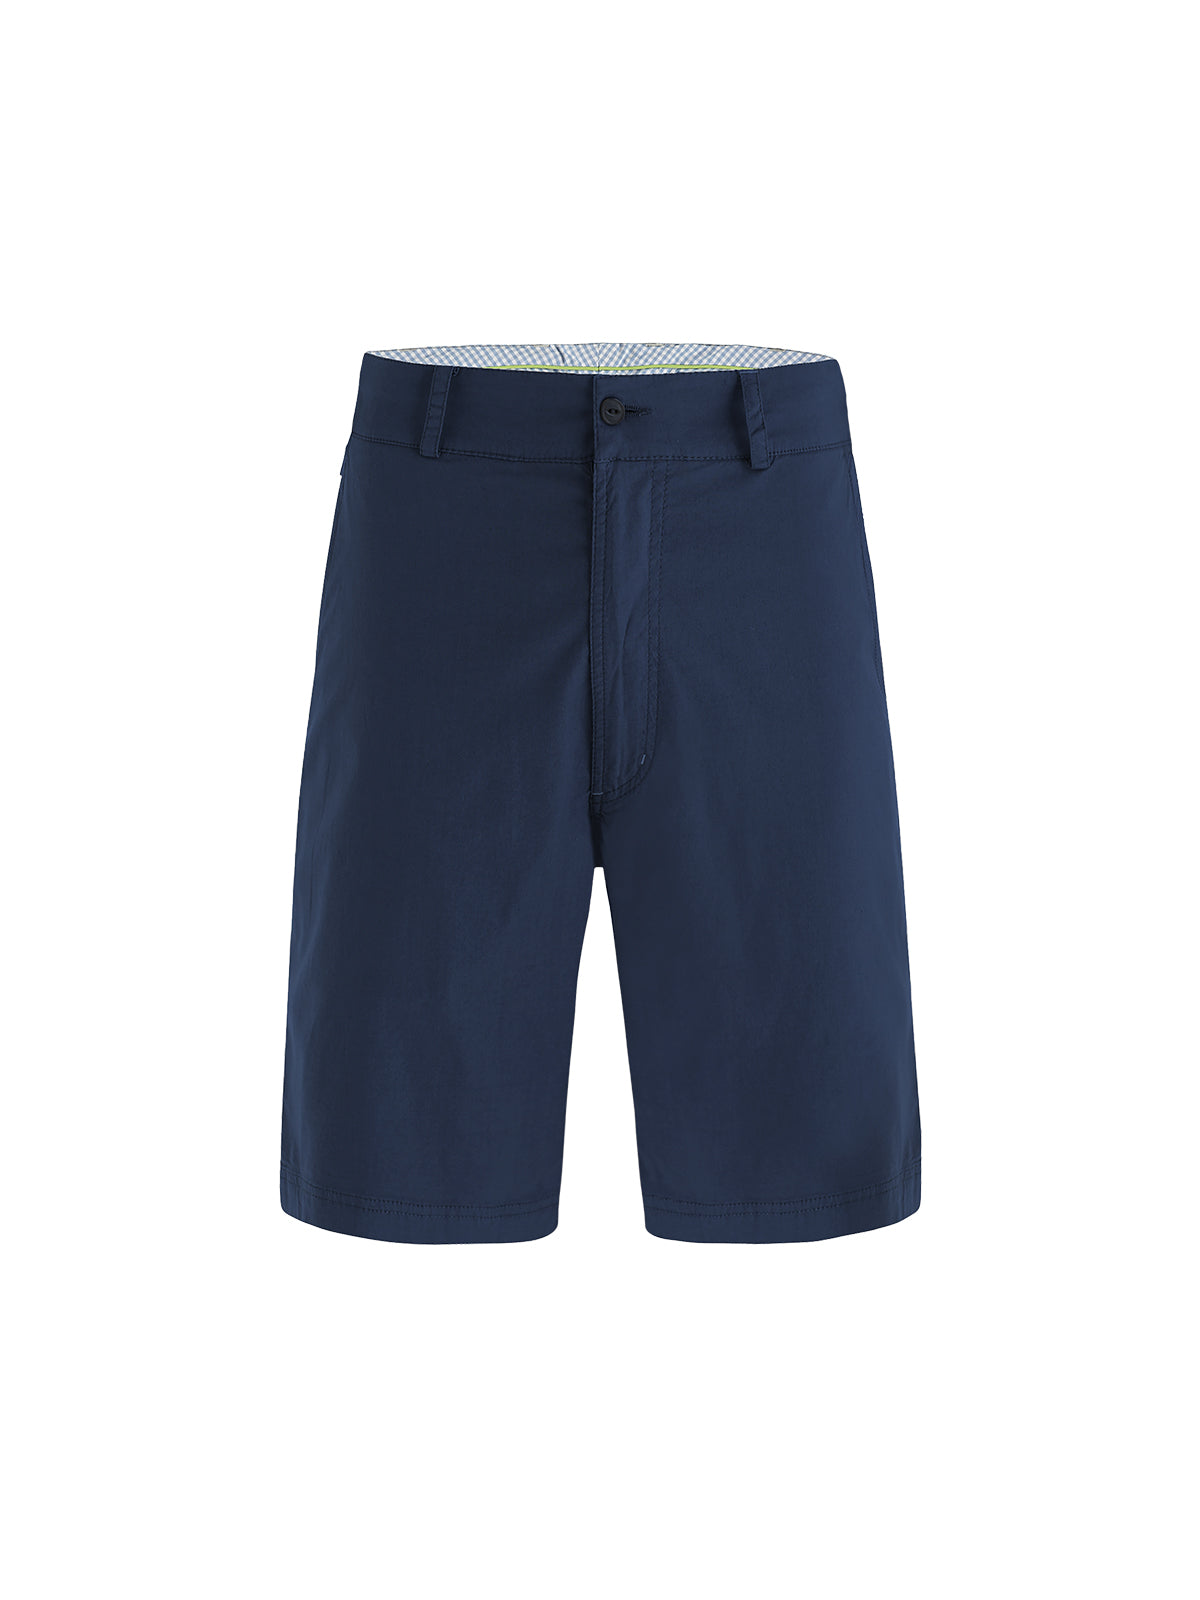 Drive Short - tasc Performance (ClassicNavy)